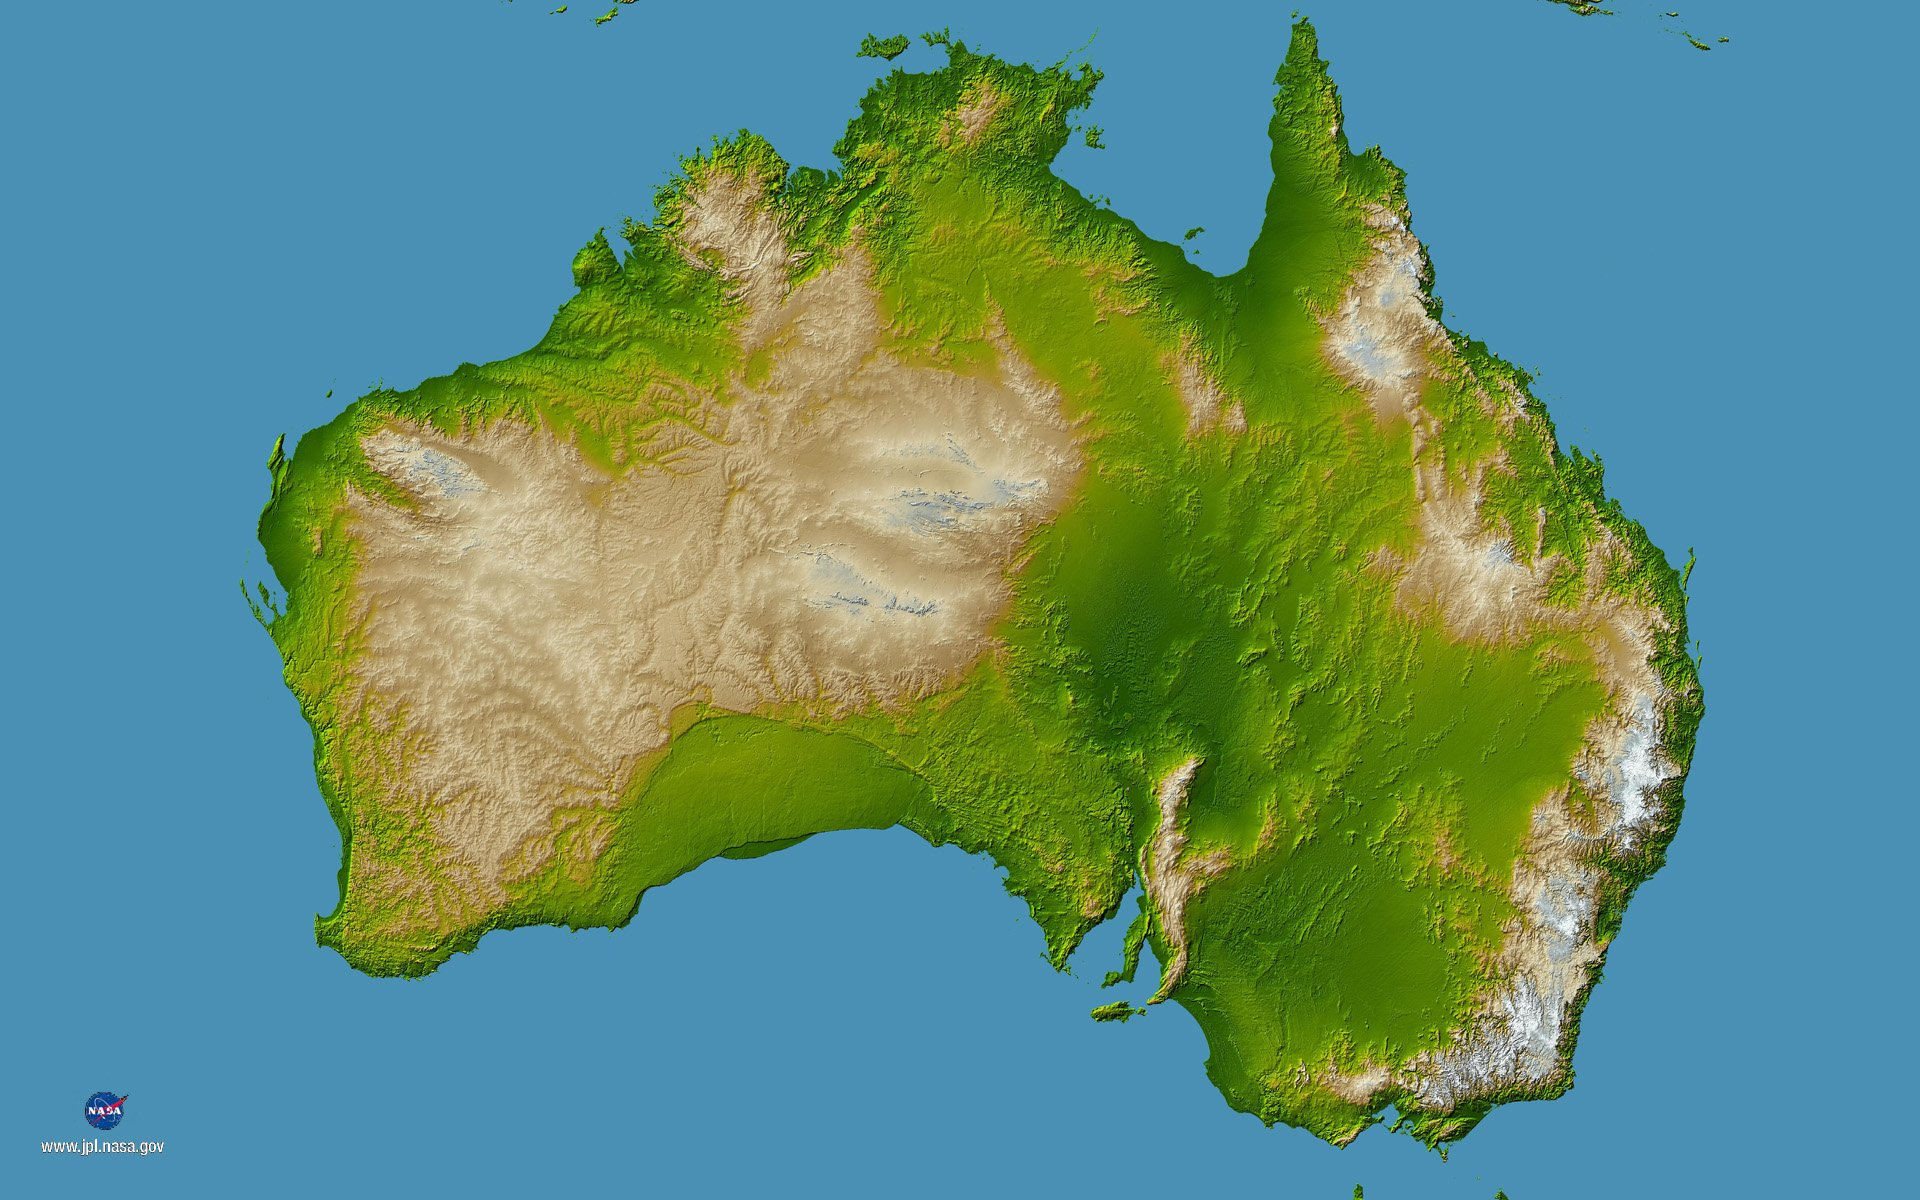 Australia Map Wallpaper.Australia Hd Wallpaper Background Image 1920x1200 Id 451314